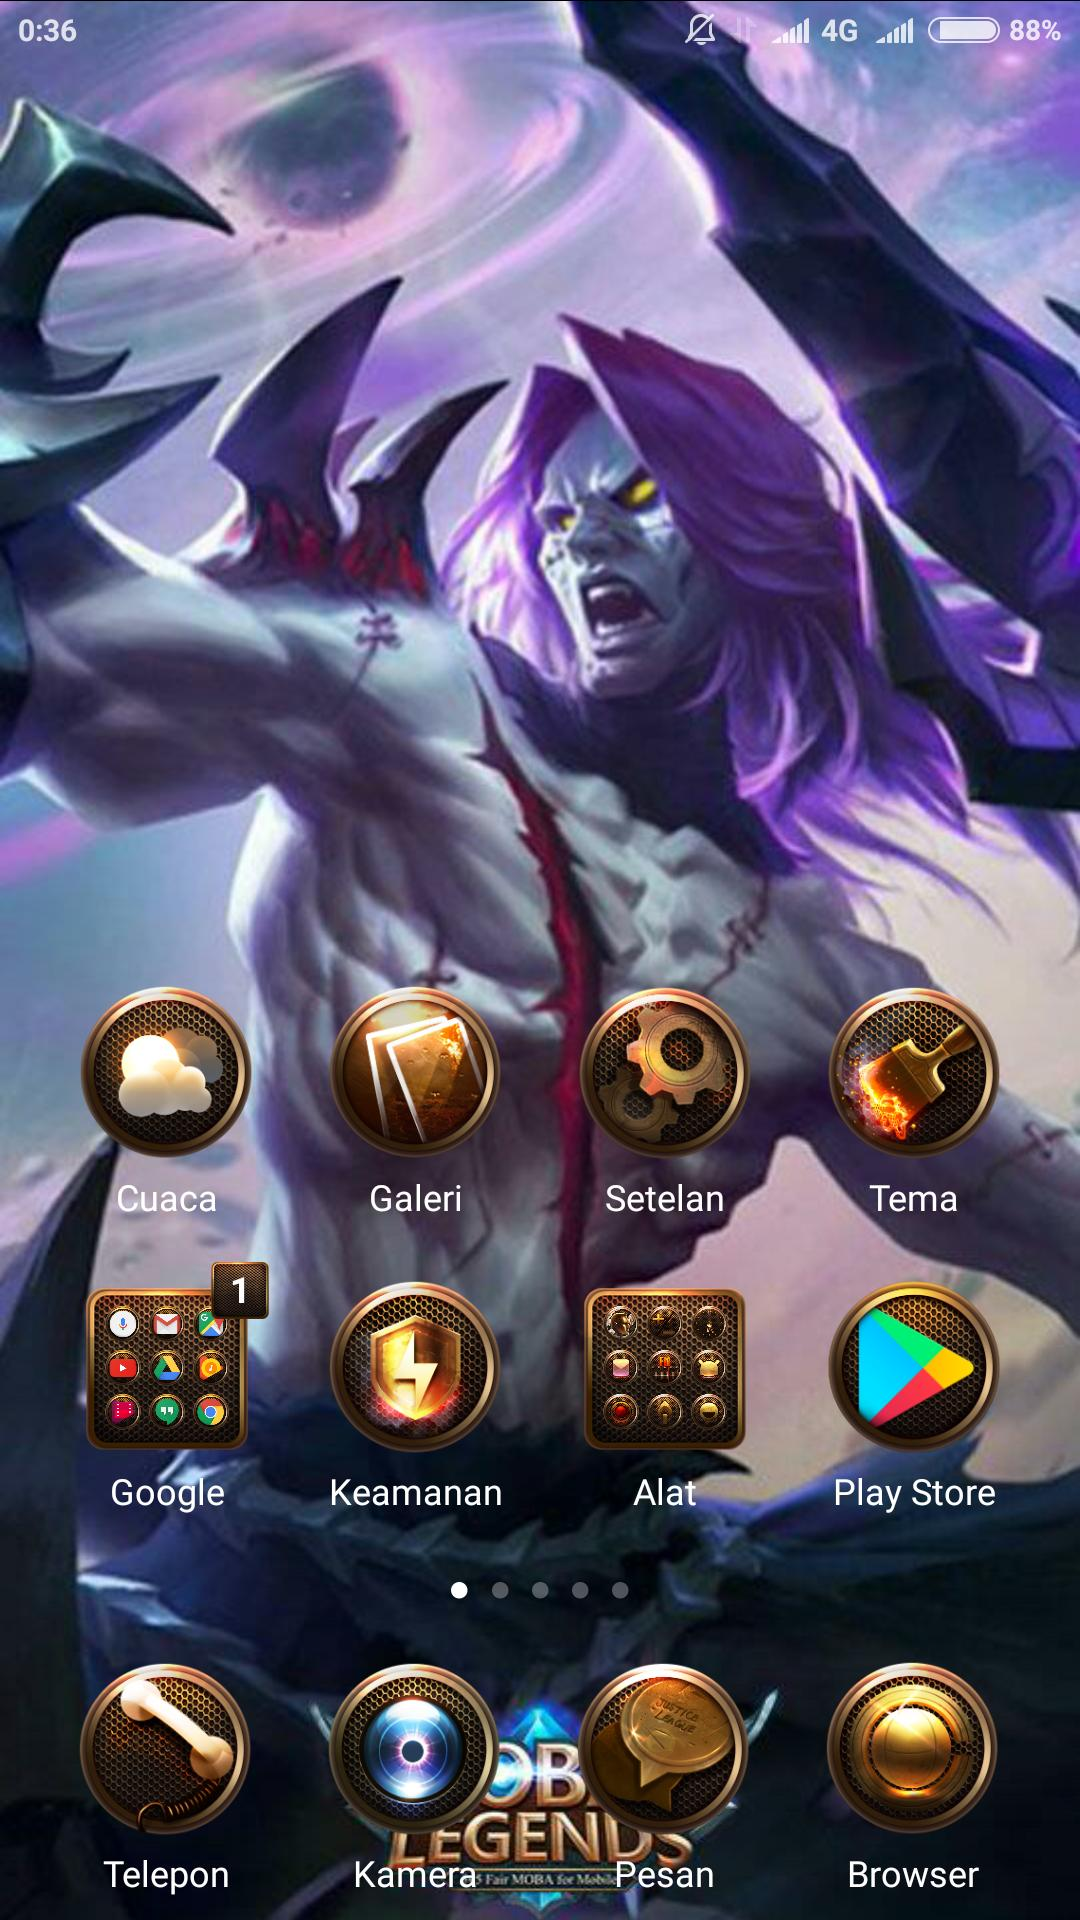 Skin of Moba Mobile Legend Wallpaper HD for Android   APK Download 1080x1920